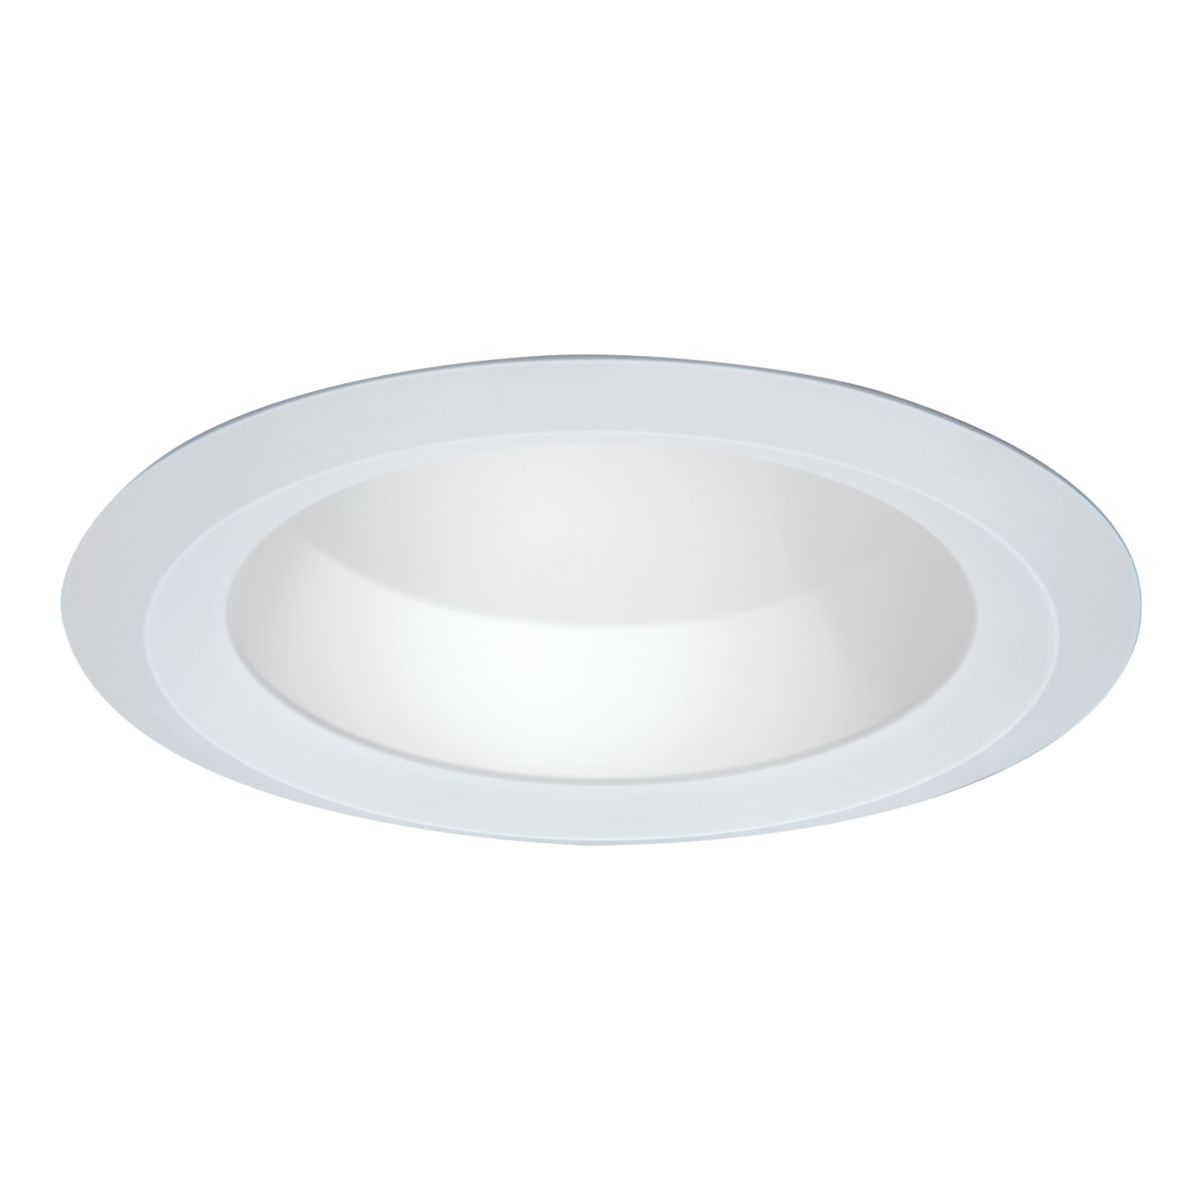 6121 Shallow Full Cone Reflector